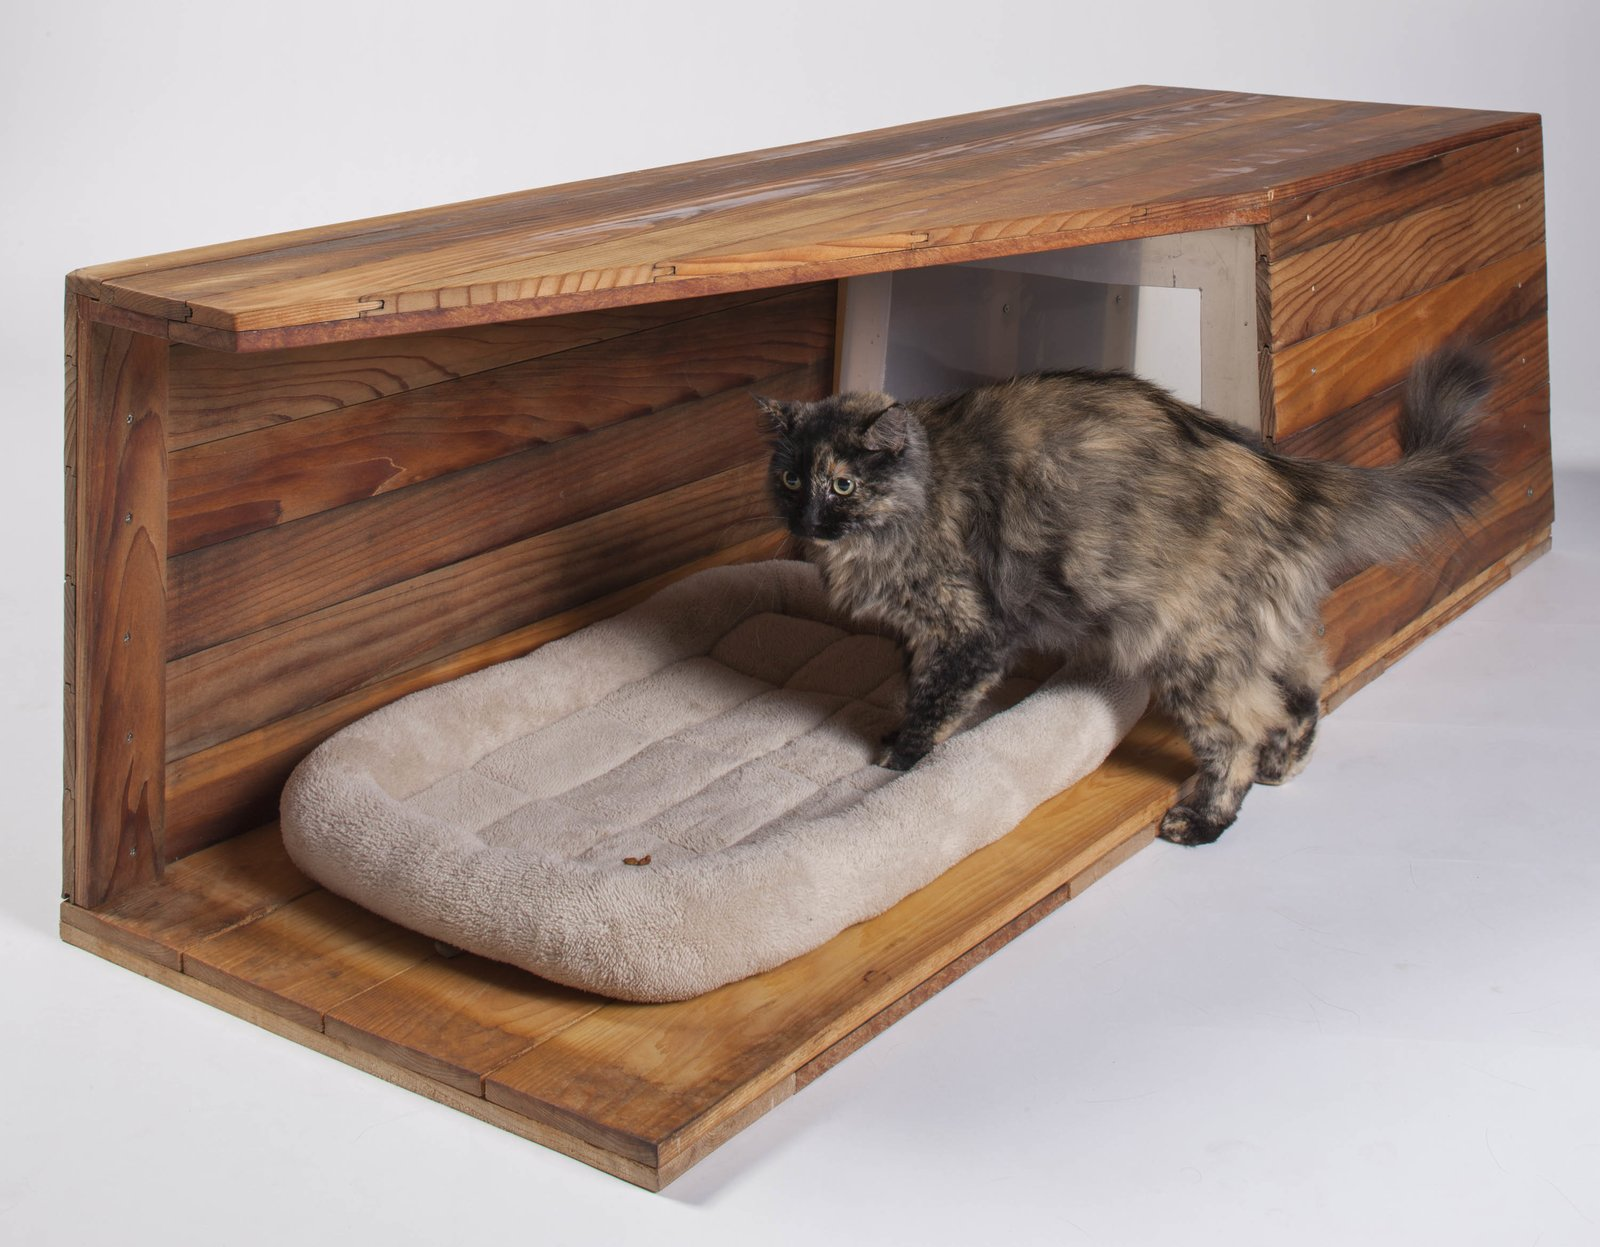 Douglas Teiger, managing principal at Abramson Teiger Architects of Culver City, designed and built this cat house with his 11-year-old son, Jared, using leftover cedar siding and an old plastic box. The total cost: under $20.  Photo 20 of 21 in 21 Cats Living in the Modern World